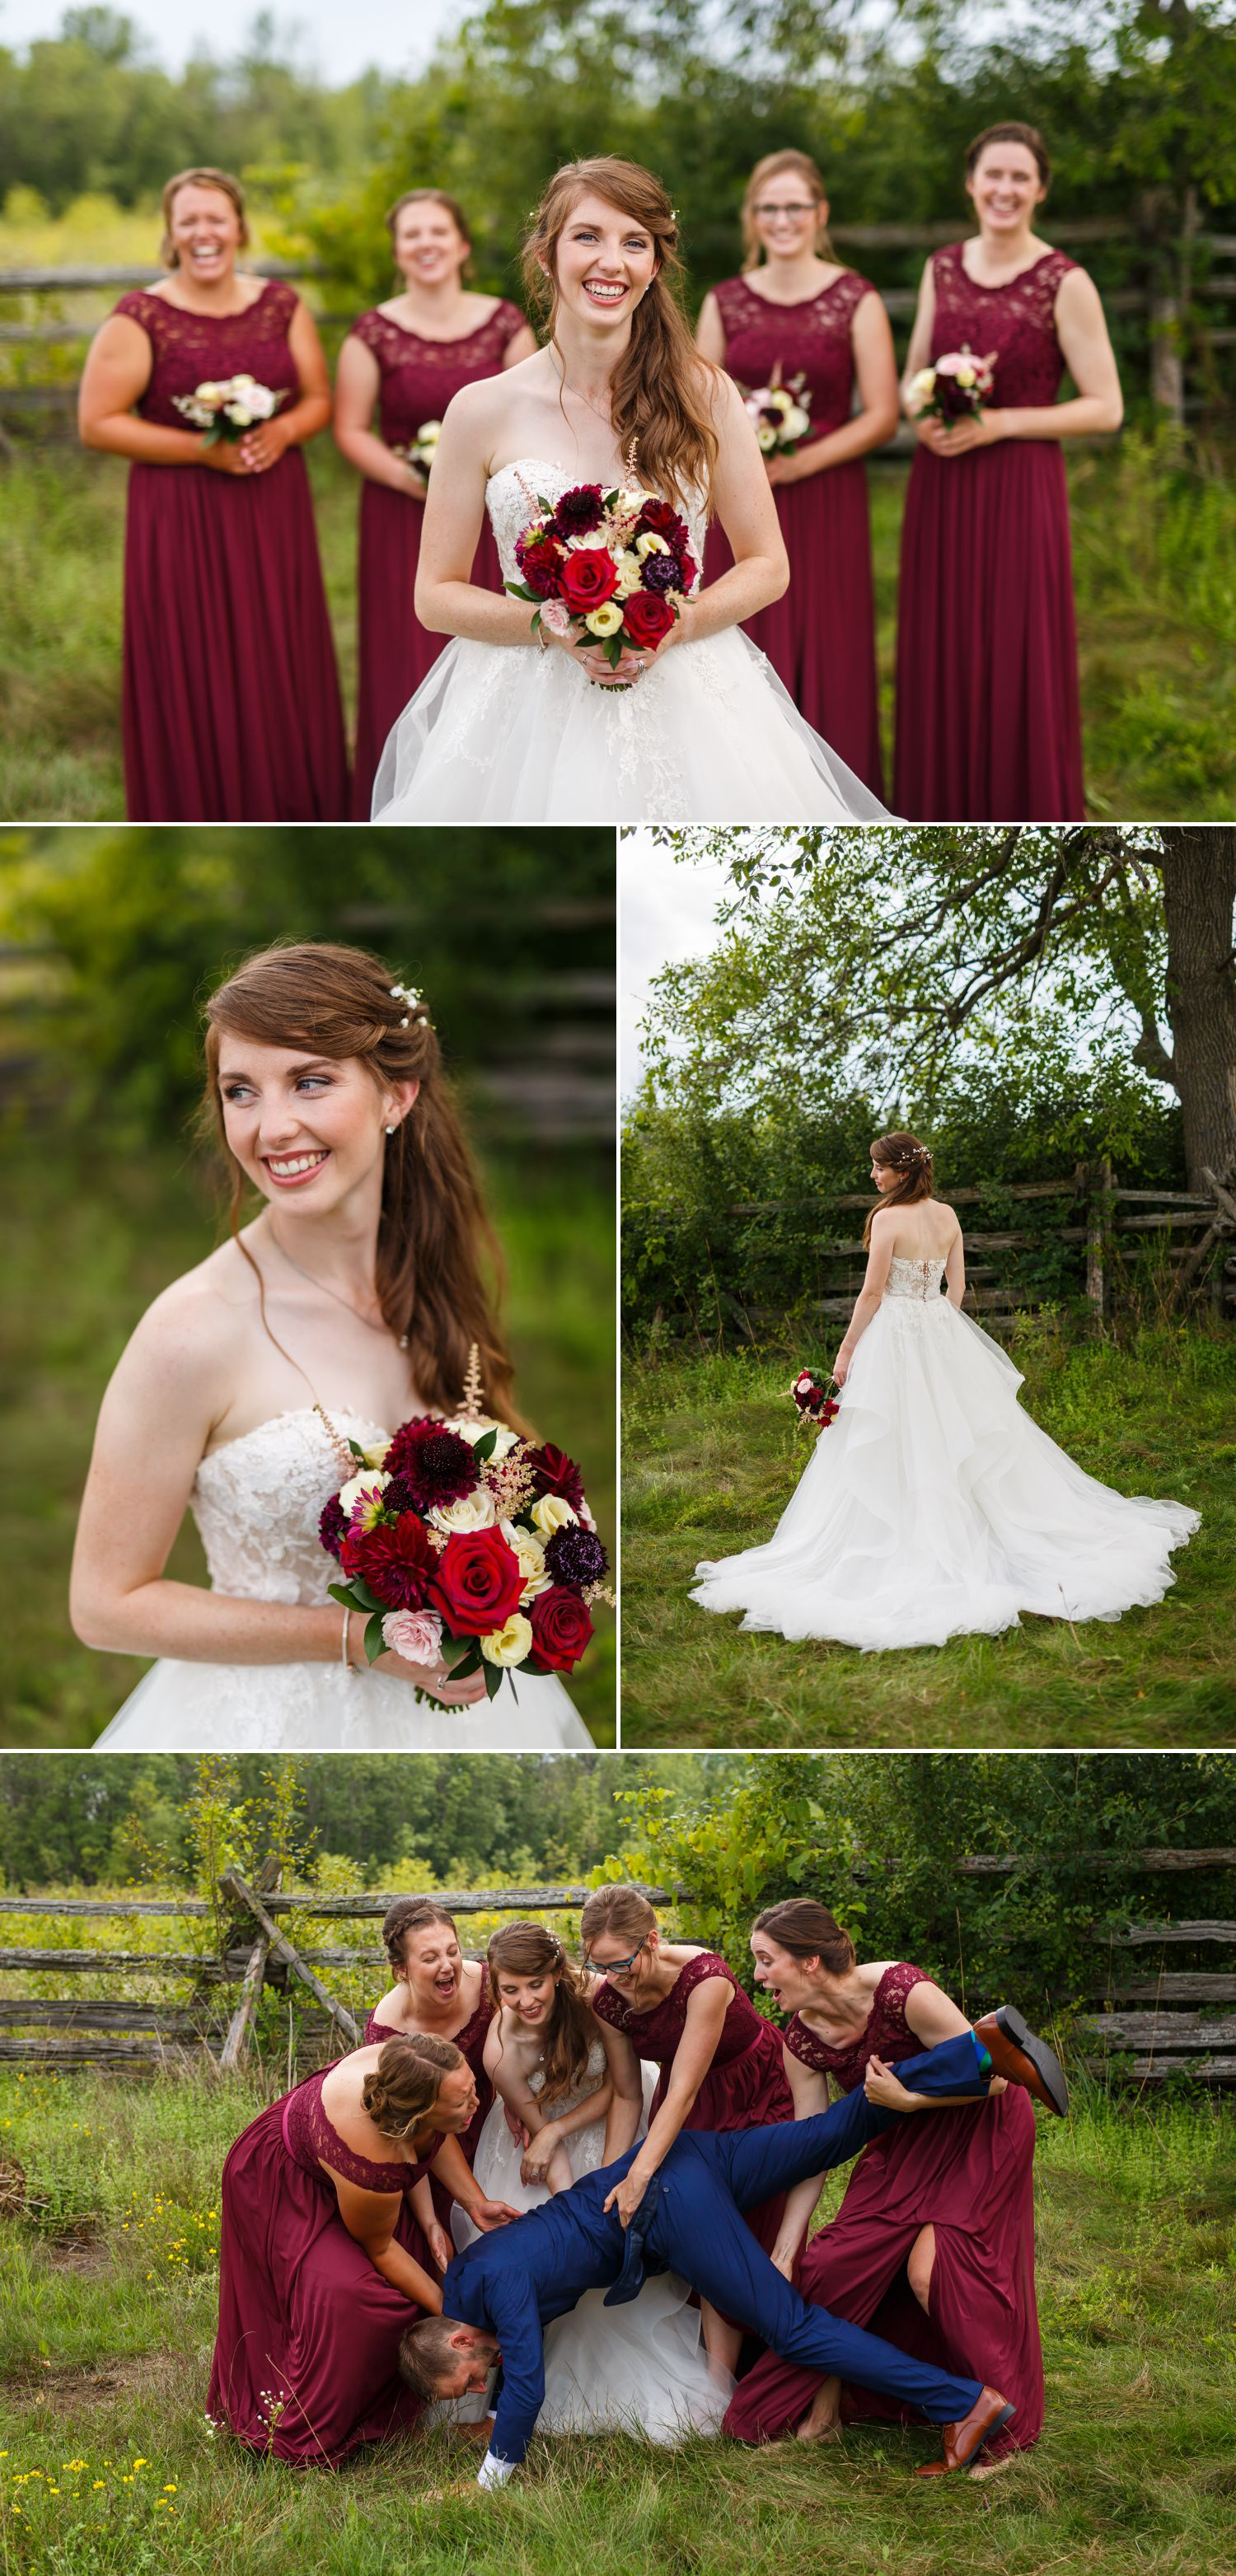 Portraits of the bride and groom with their wedding party at Stonefields Estate